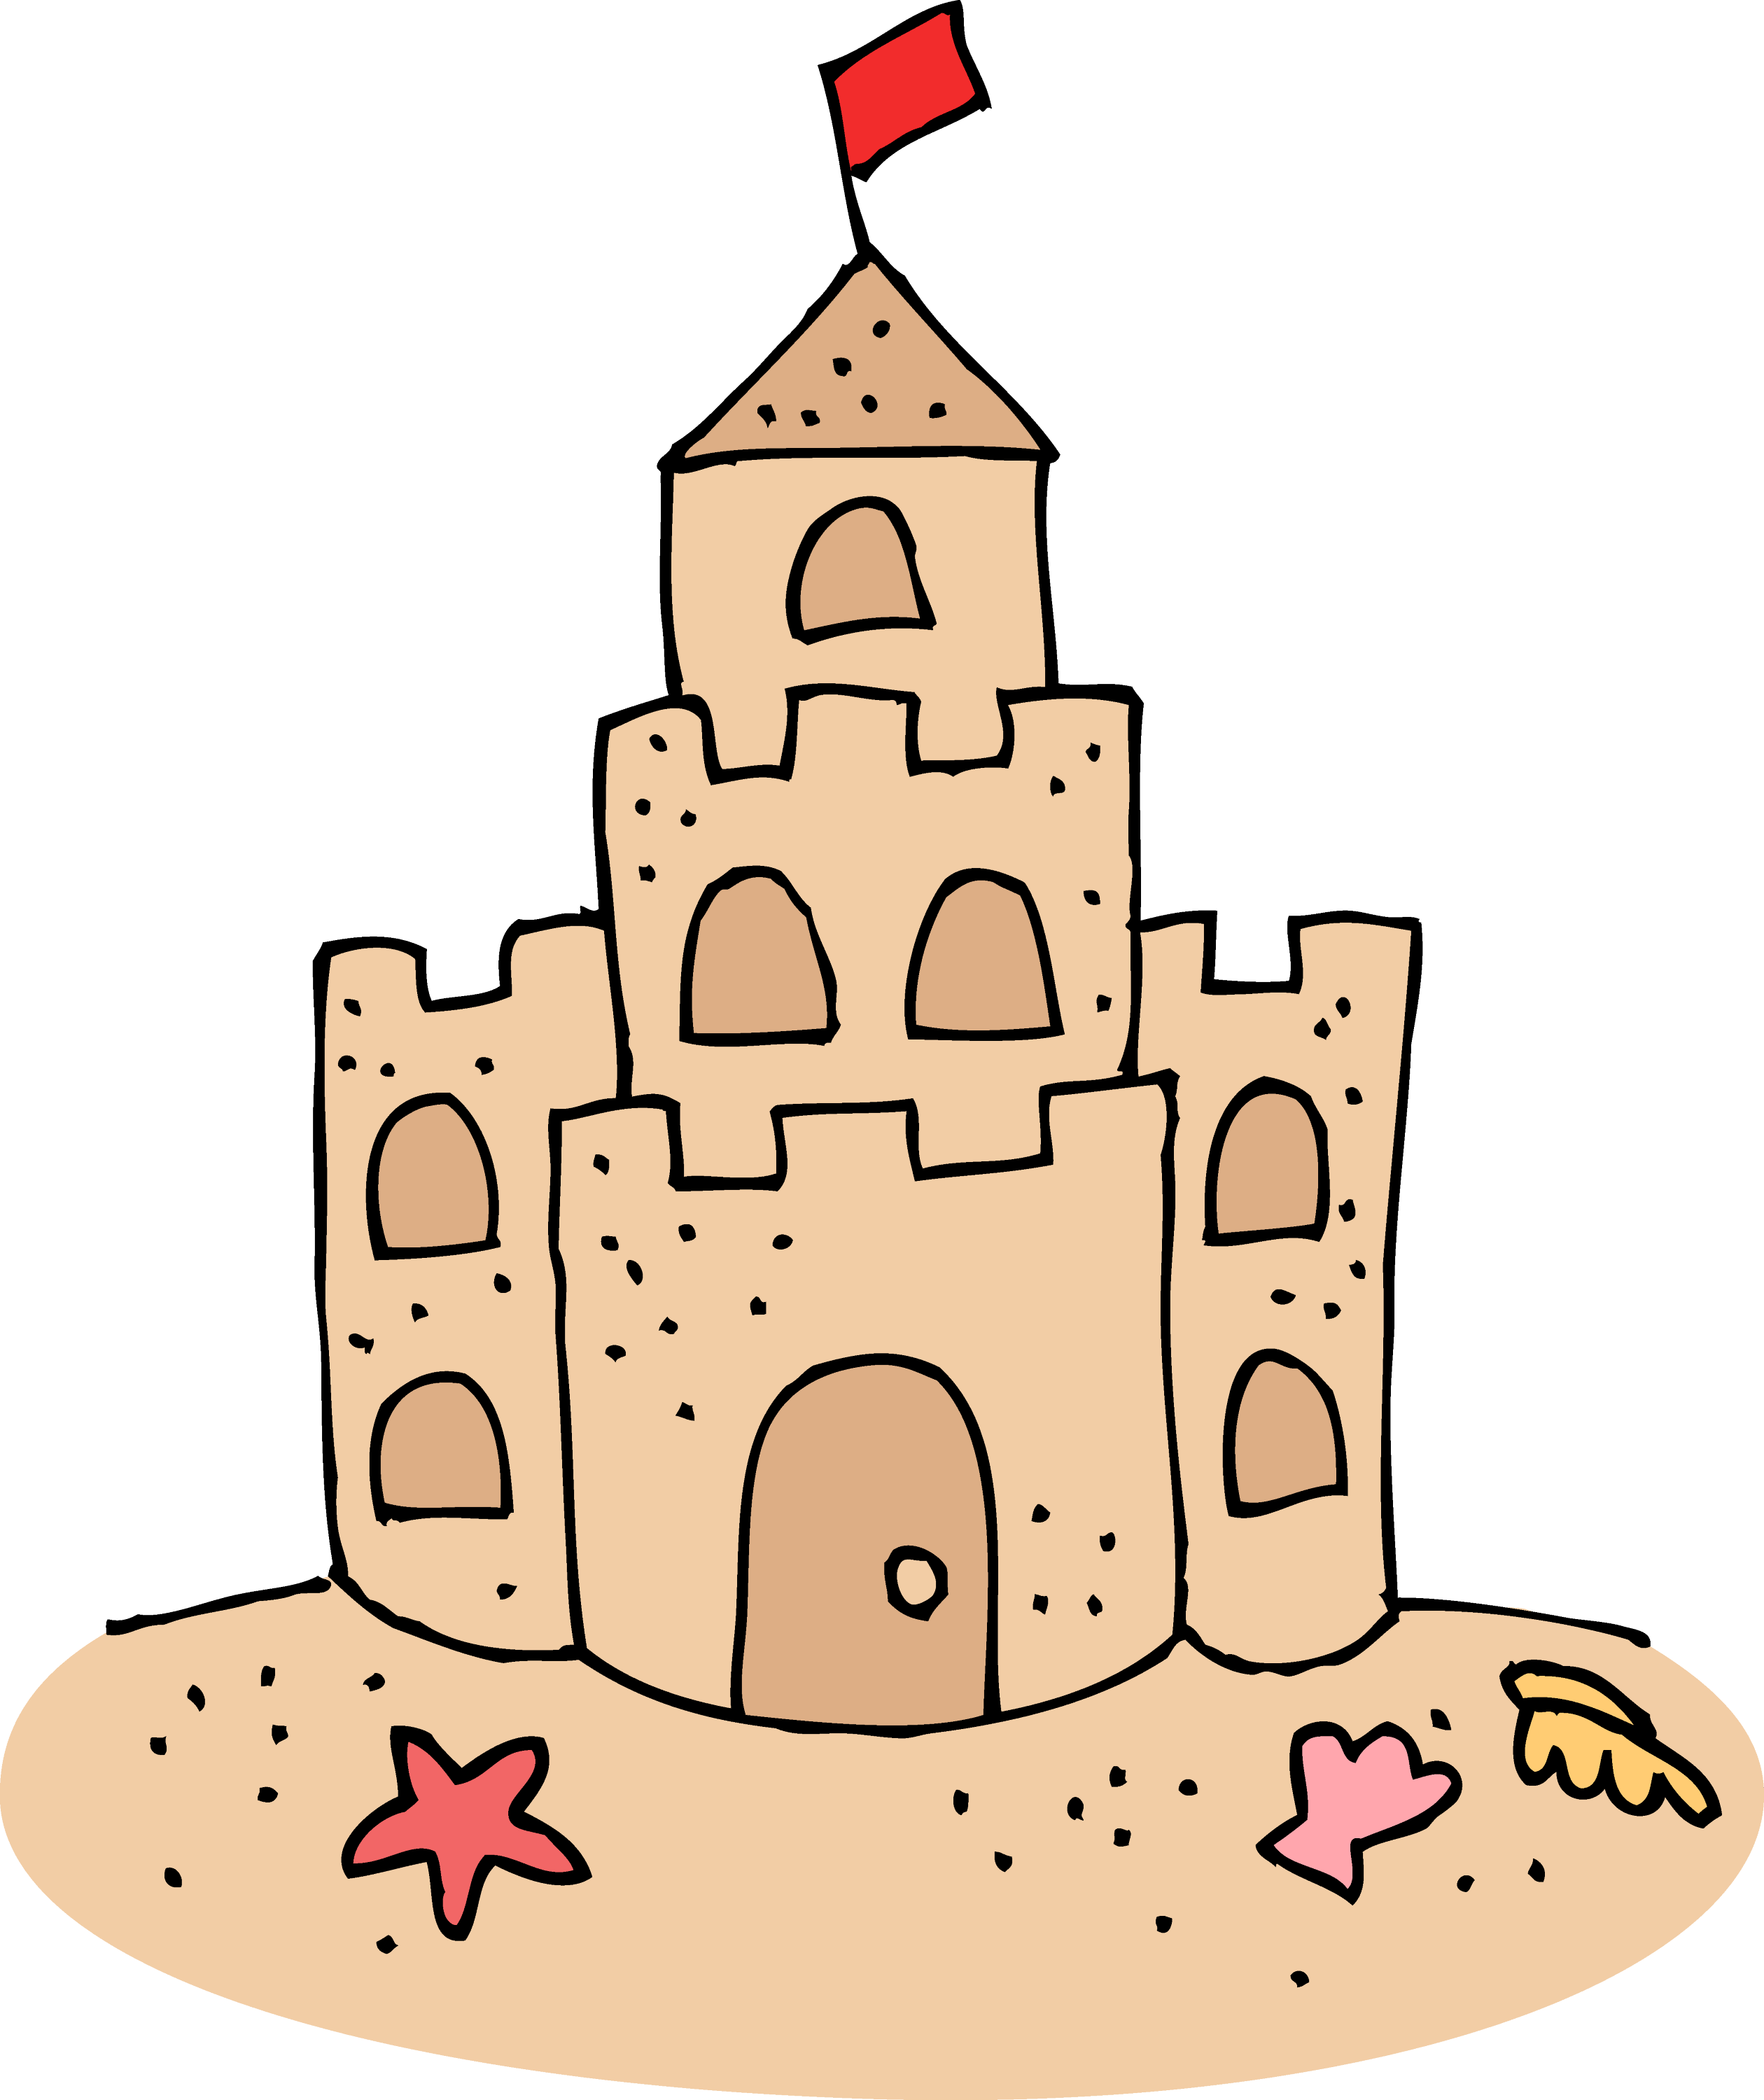 cute sand castle clipart free clip art rh sweetclipart com sandcastle clipart black and white clipart sandcastle outline